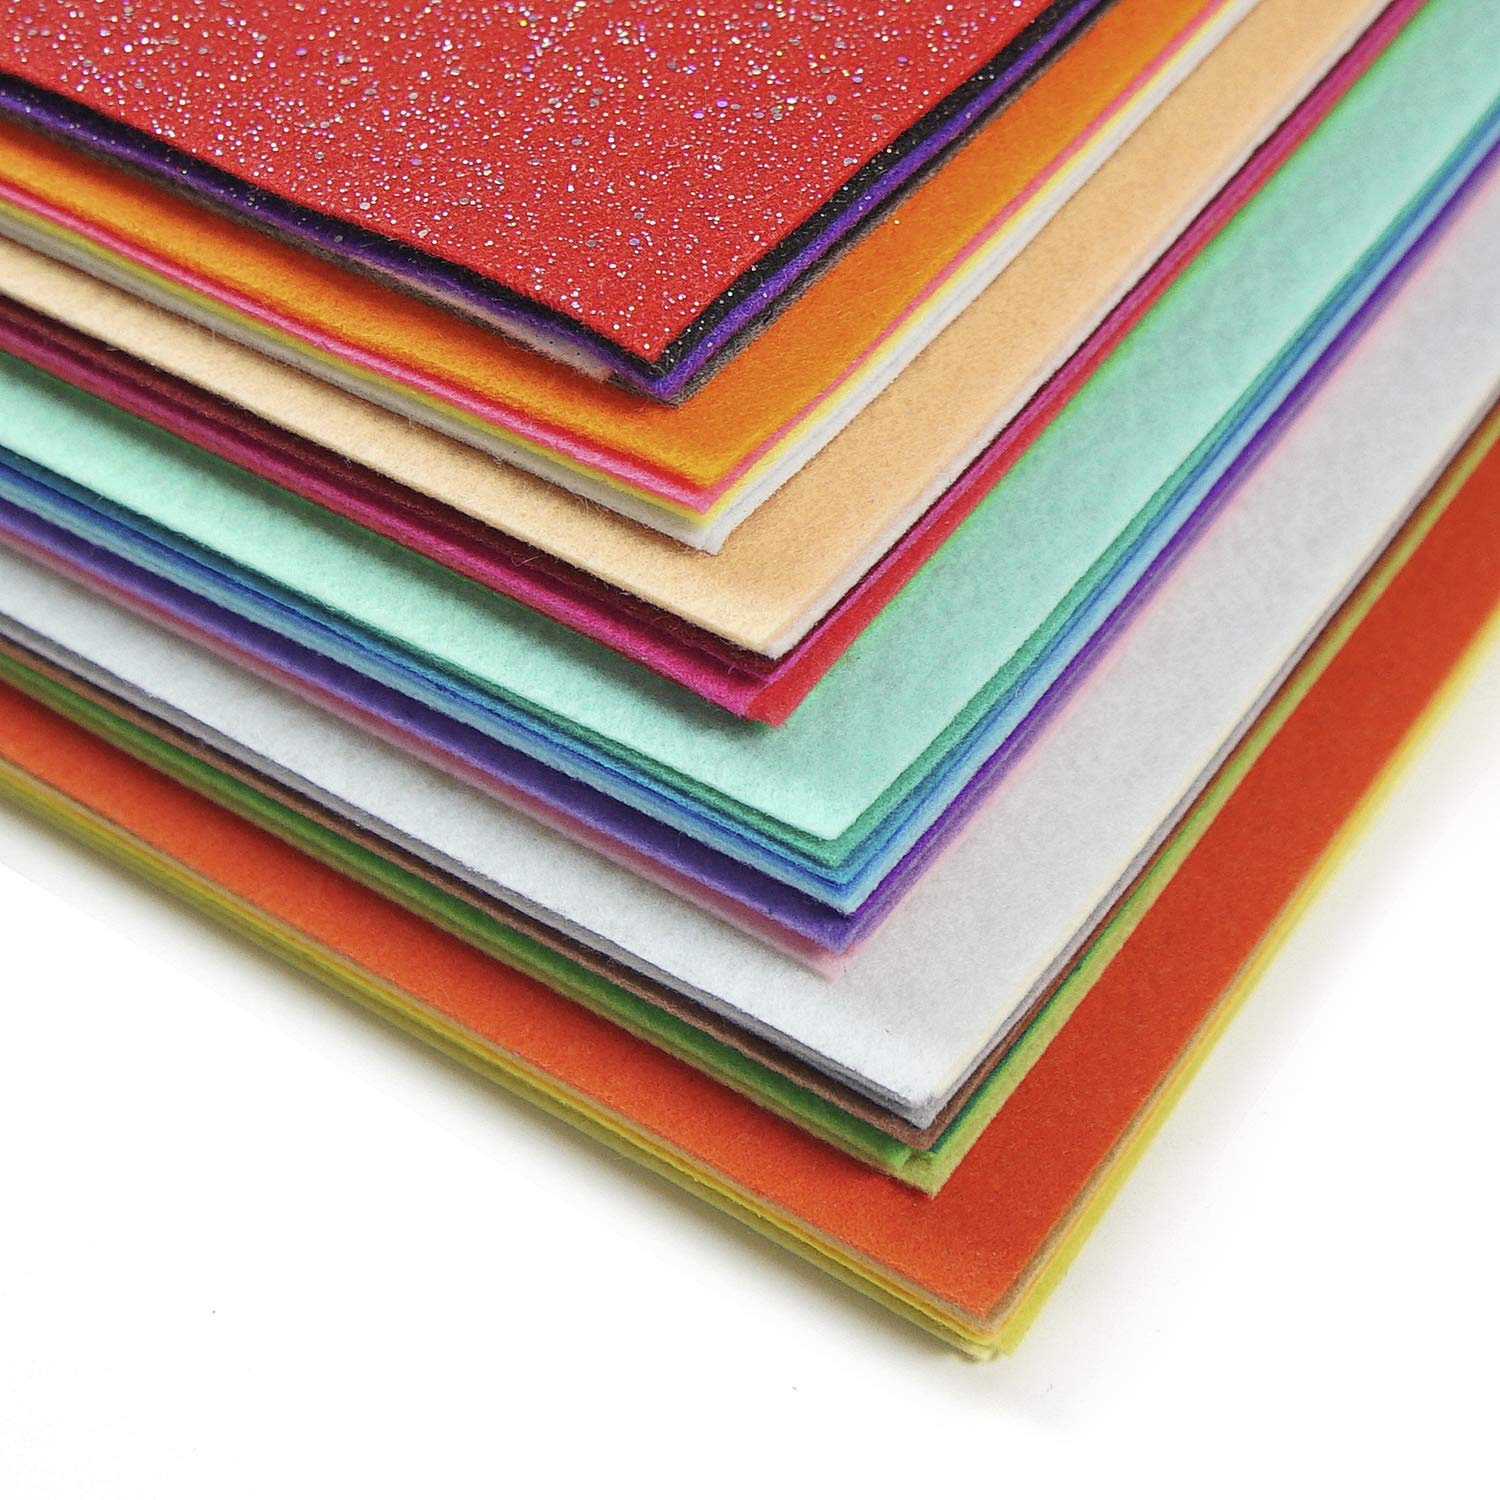 Crafting Projects Sewing 12x14 Squares ARTEZA 50 Assorted Stiff Felt Fabric Sheets 1.5mm Thick for DIY Crafts